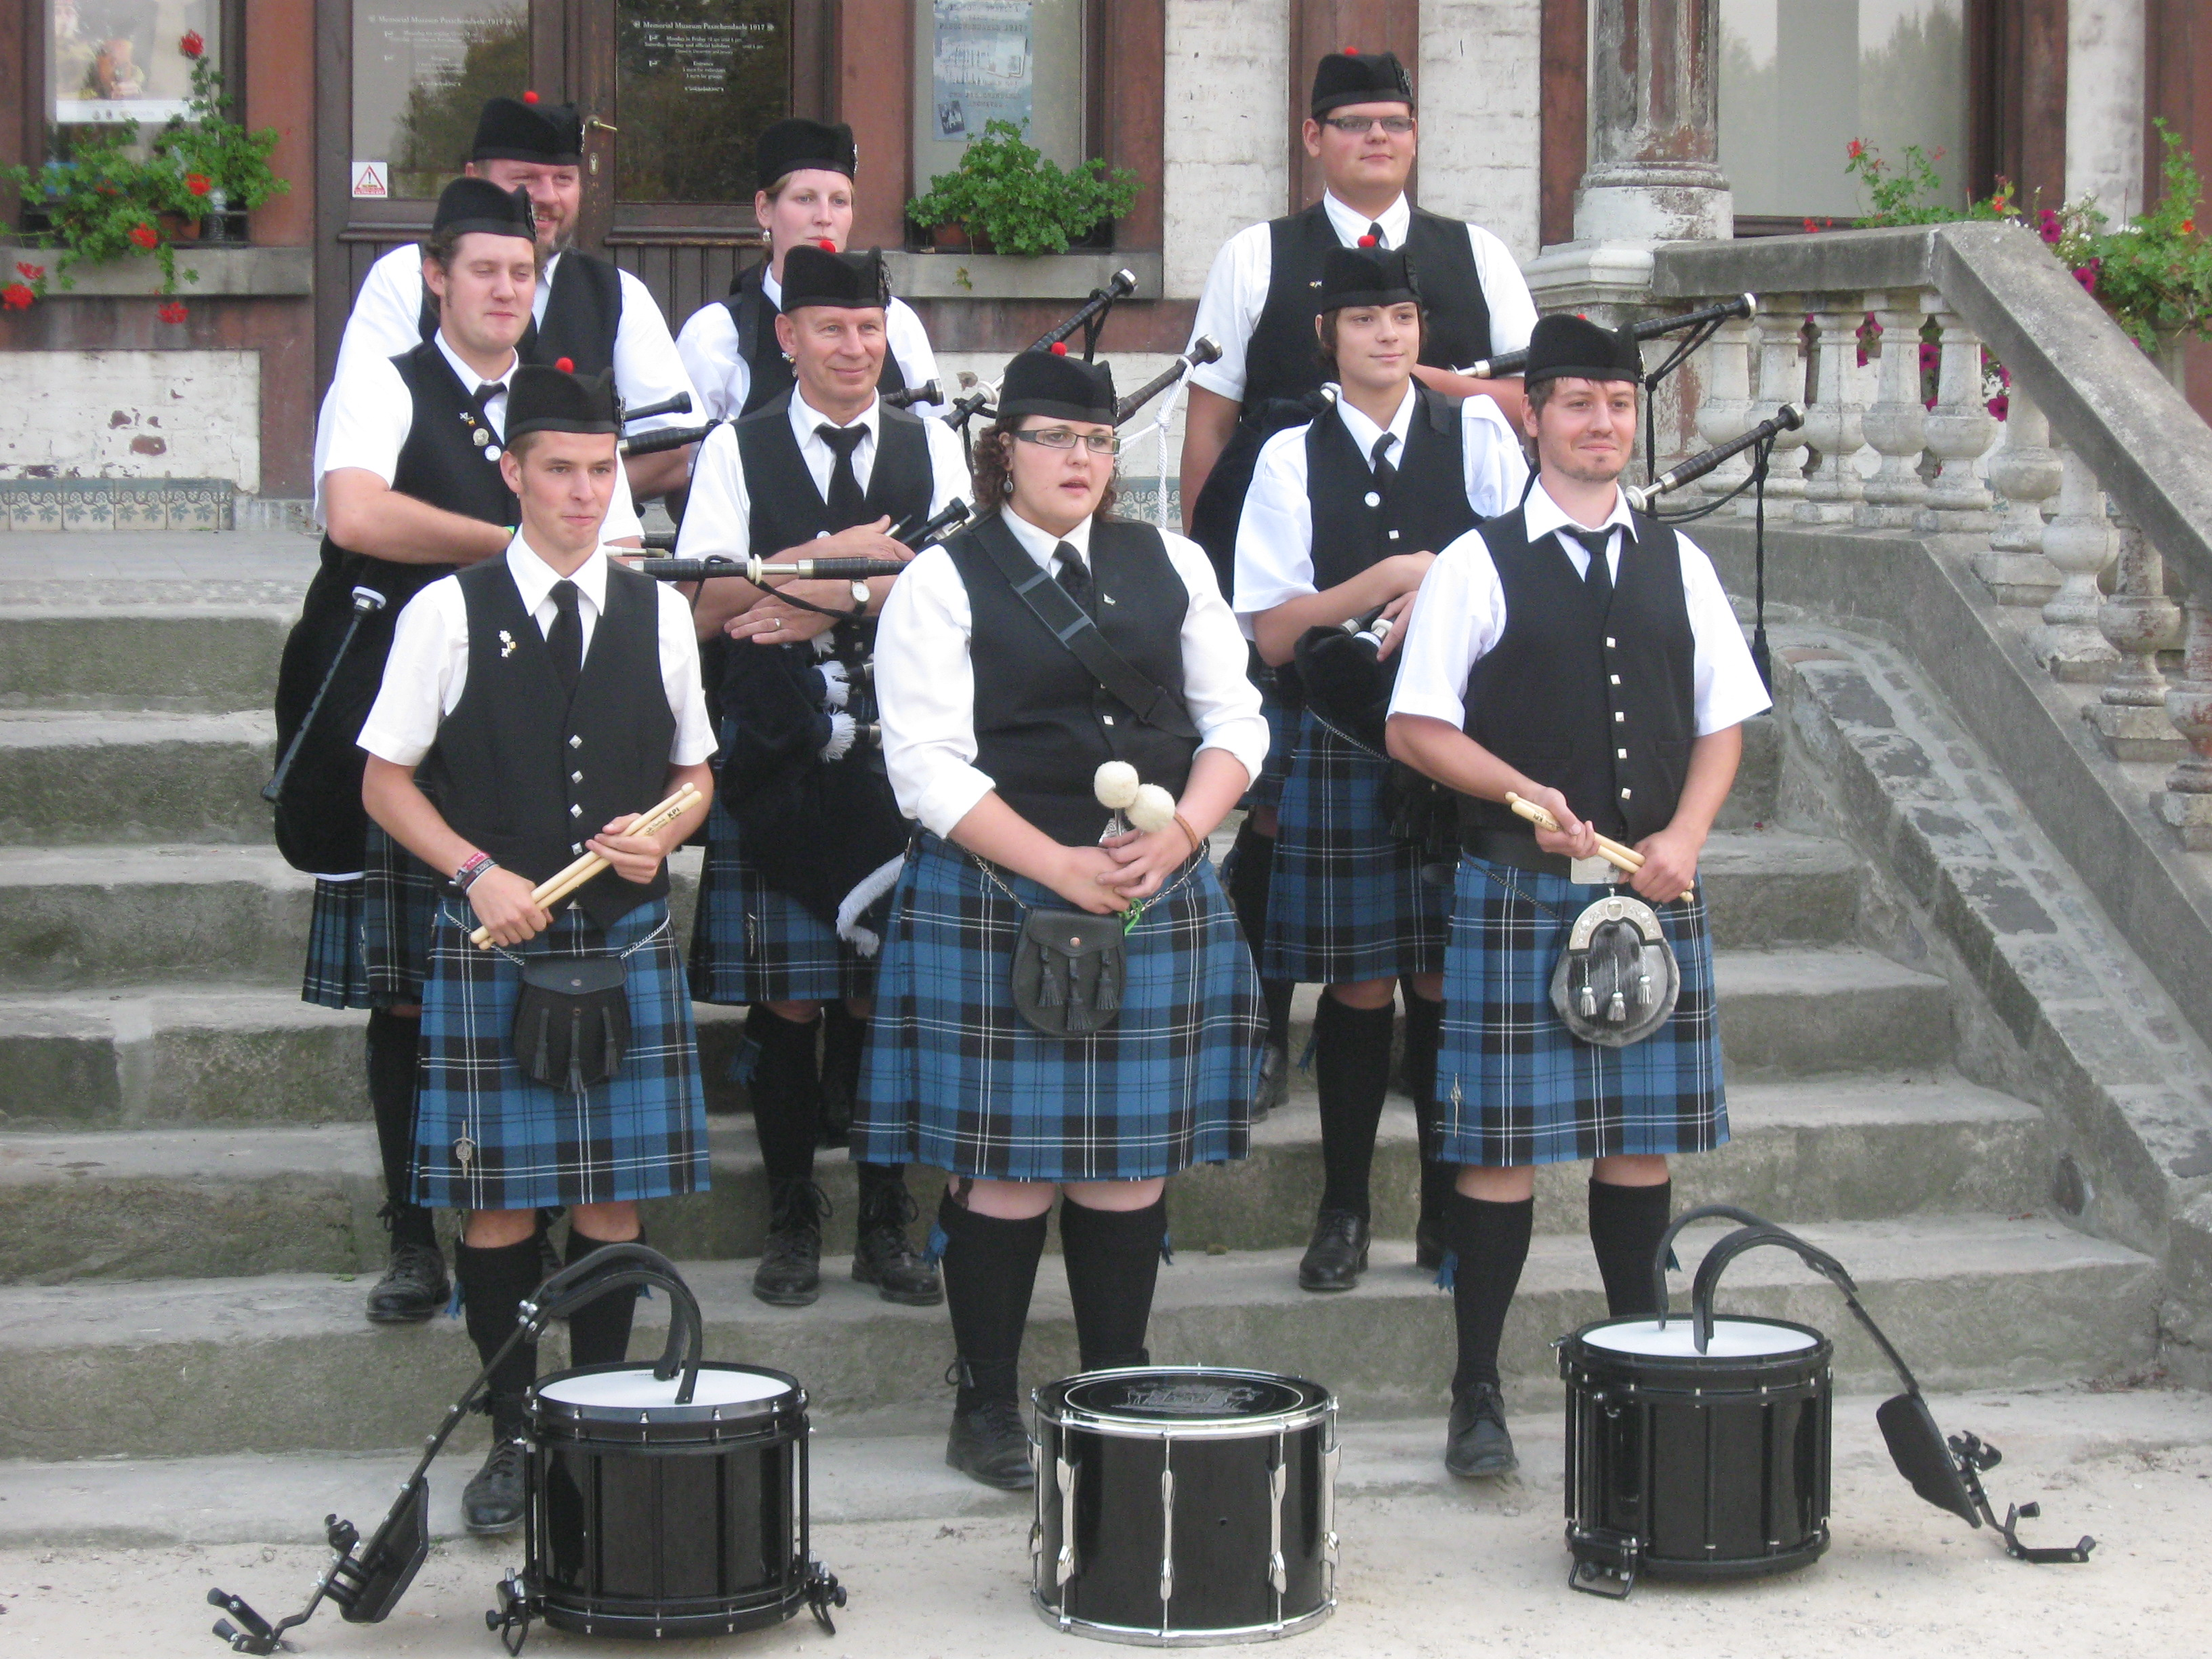 bagpipes 1012011049371050247225040